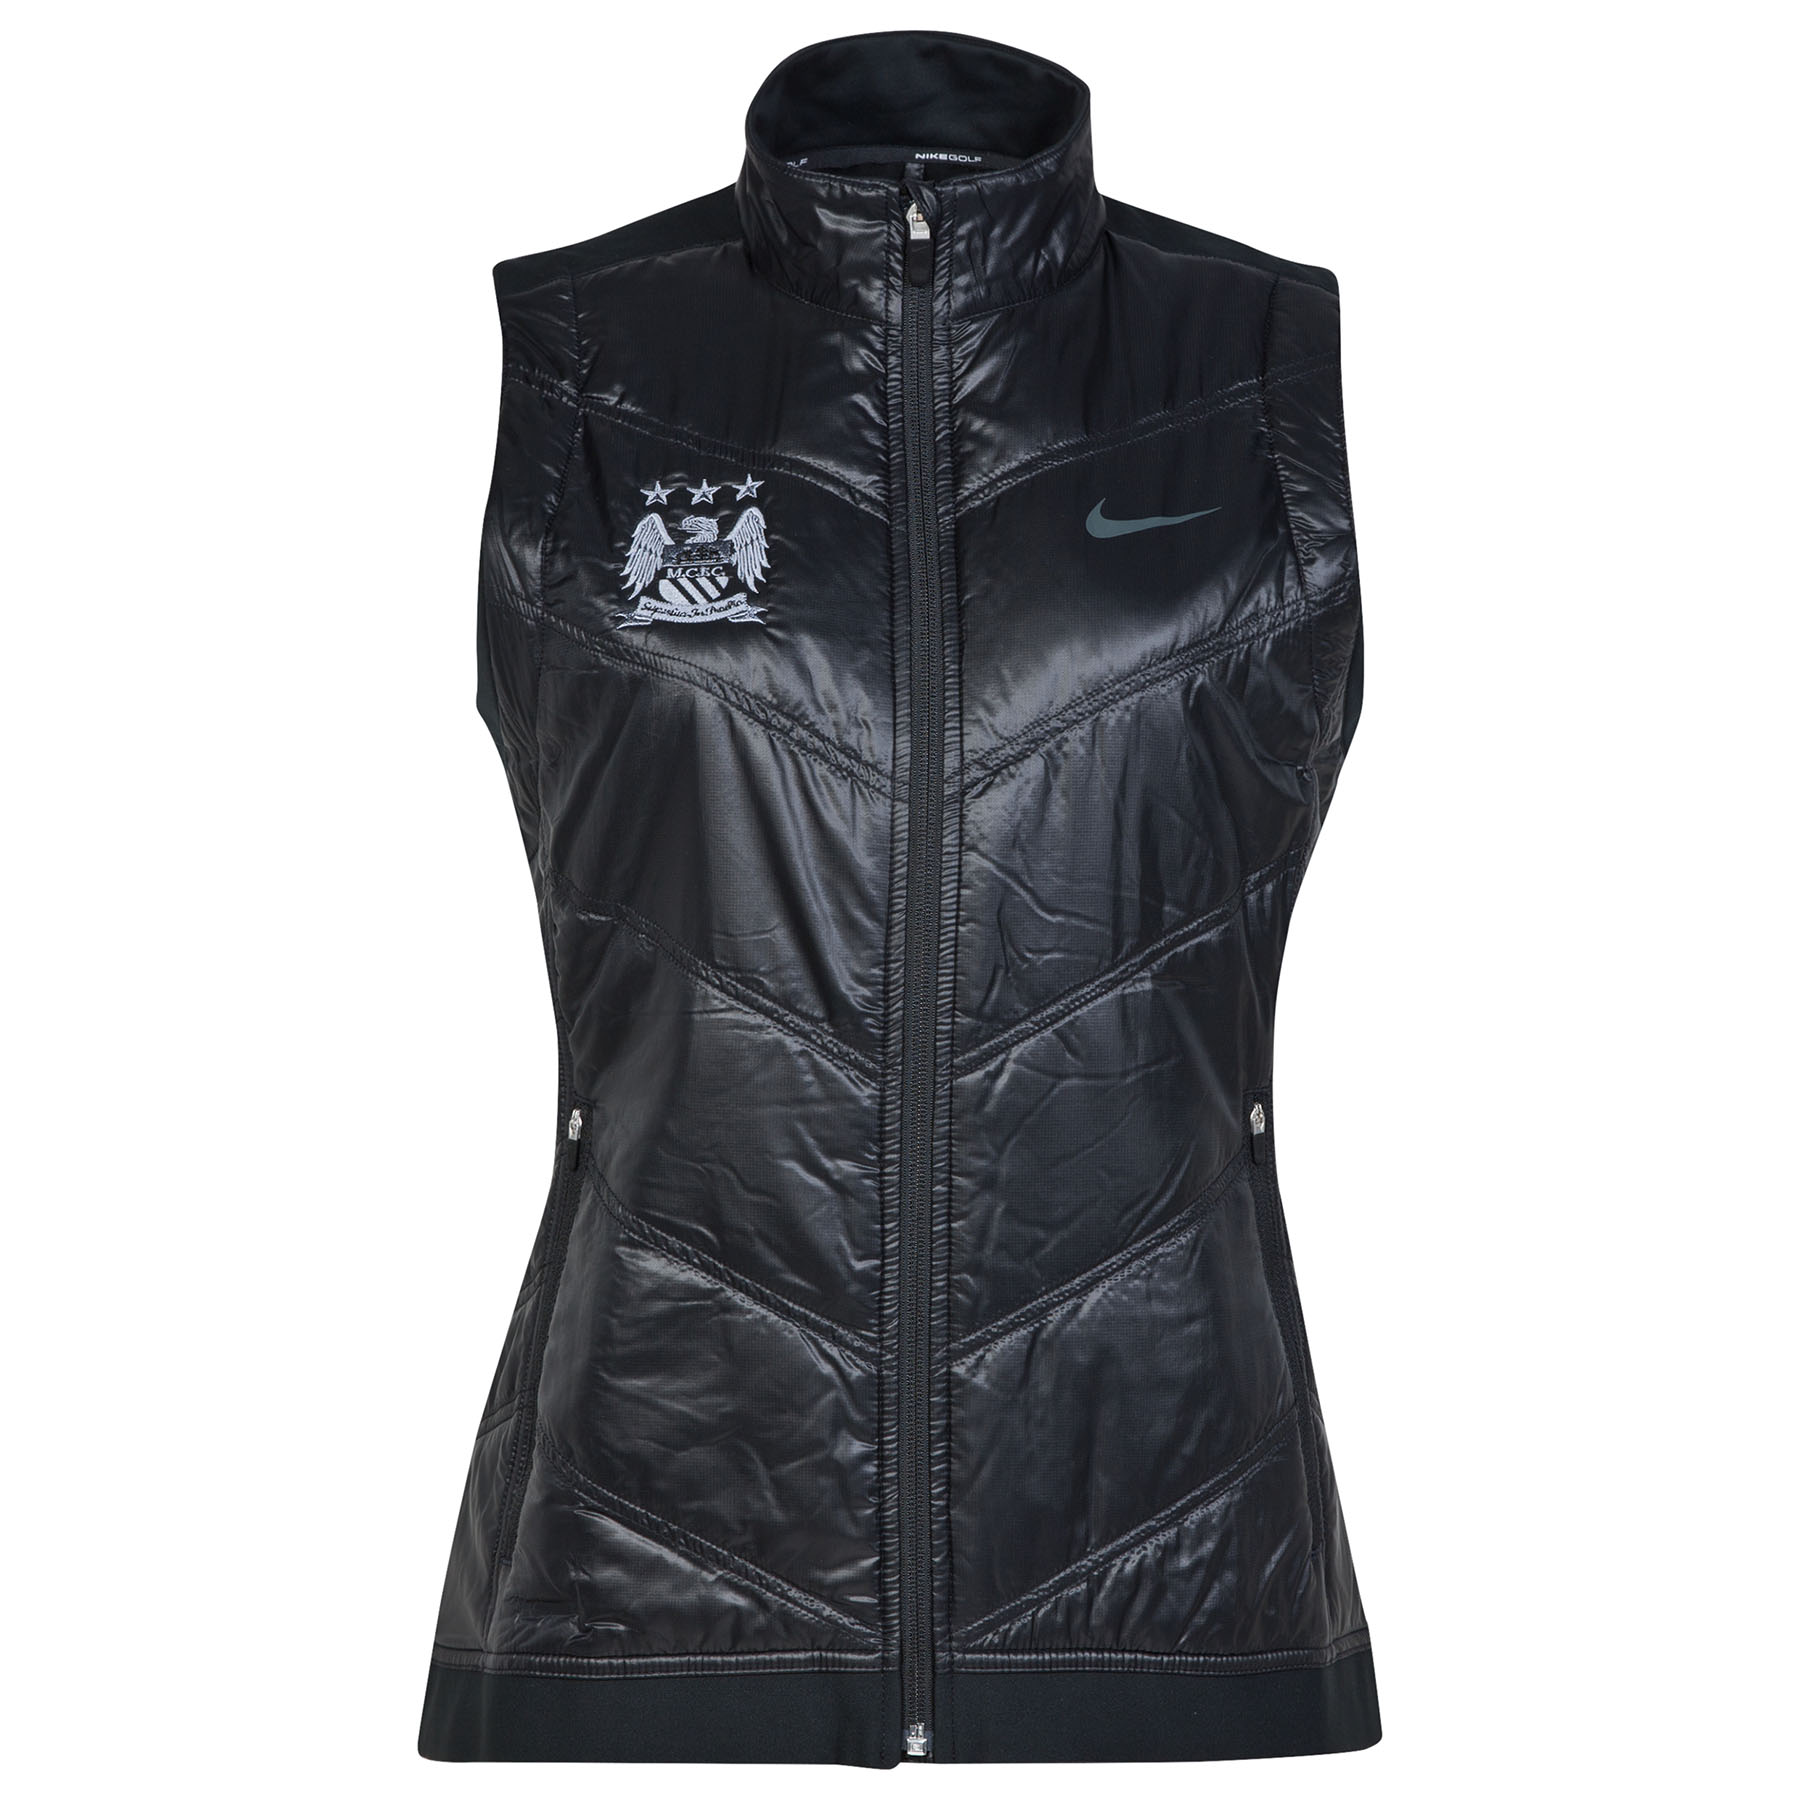 Manchester City Thermal Mapping Vest - Womens Black